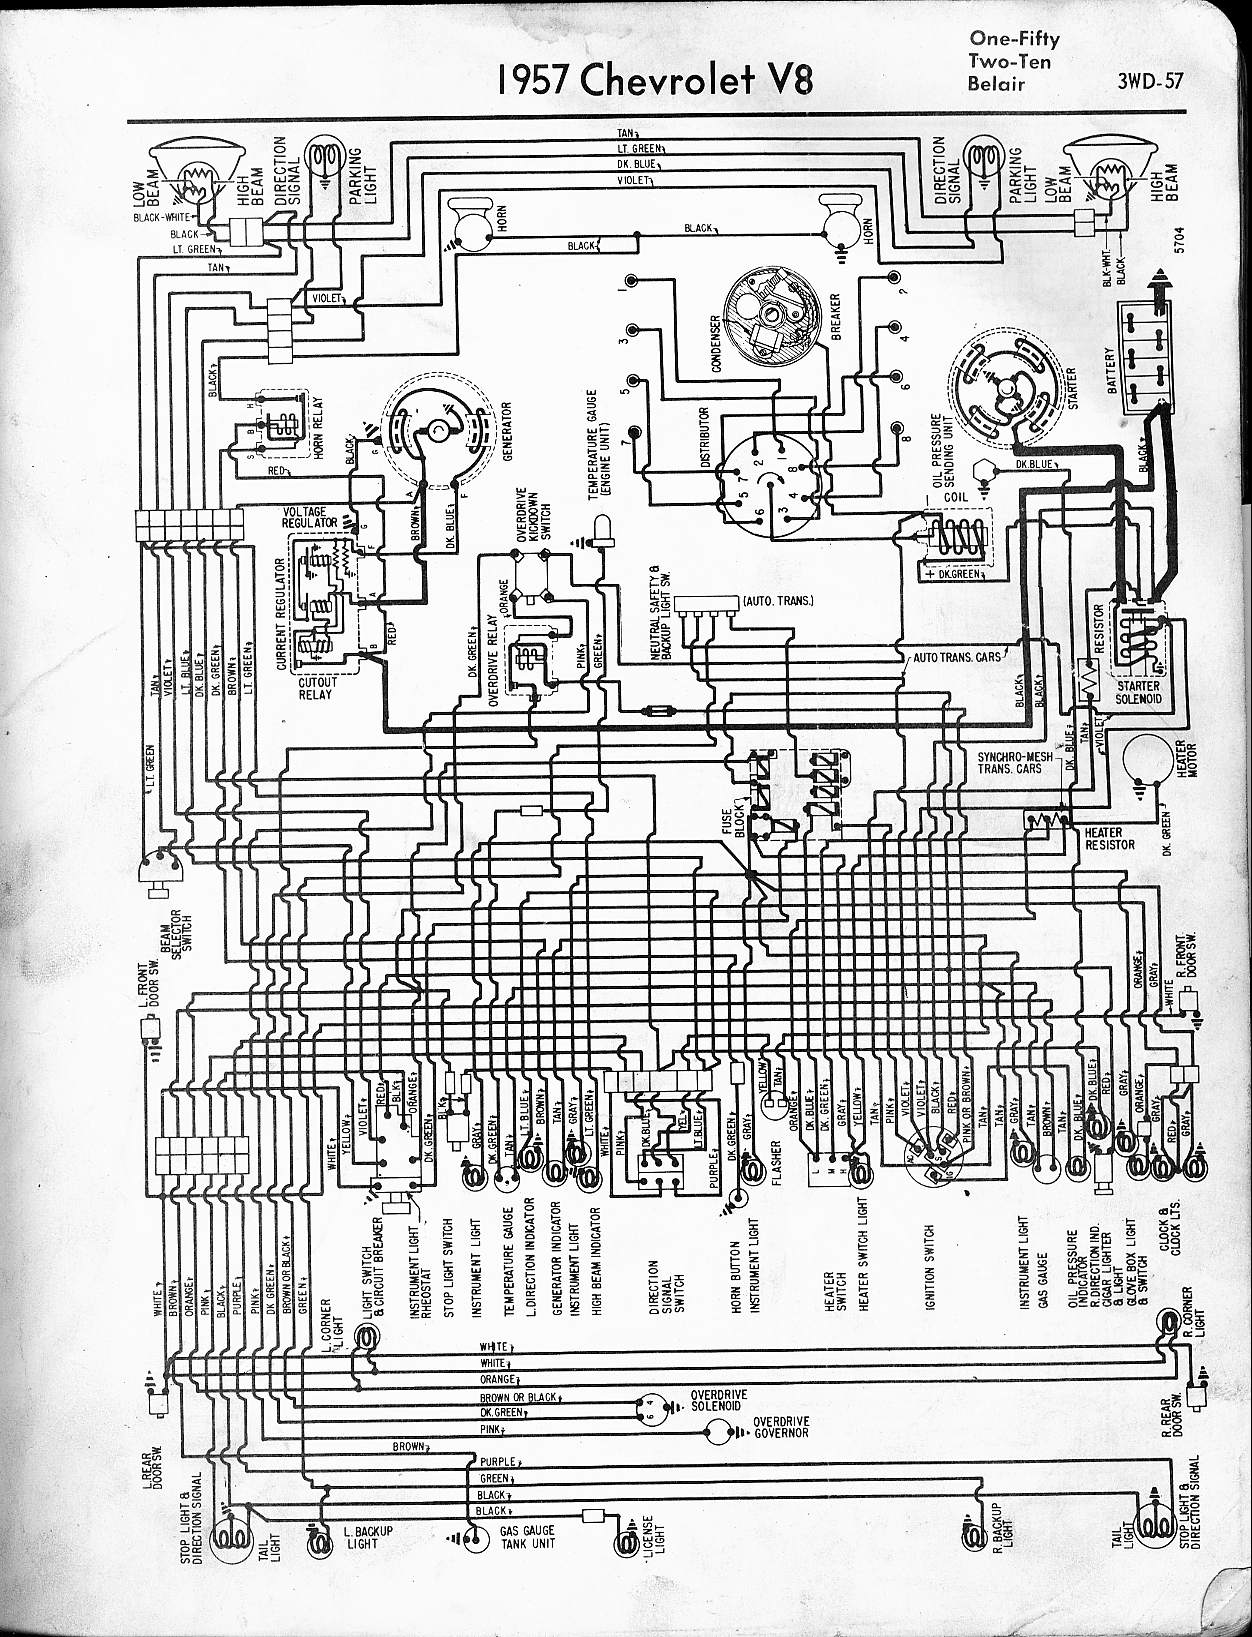 gm neutral safety switch wiring diagram neutral safety switch, 57 powerglide - trifive.com, 1955 ...